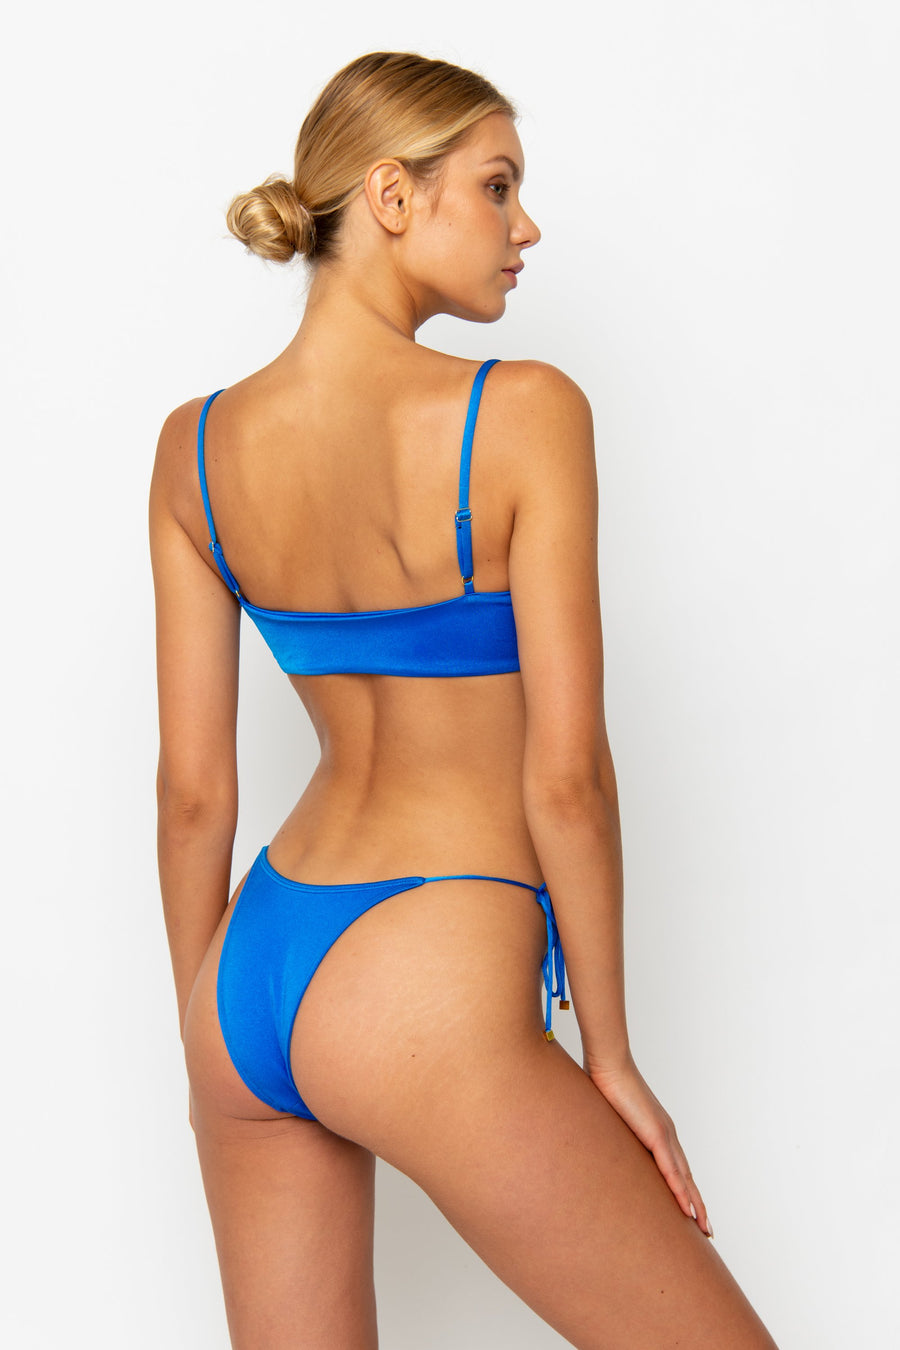 CARA Sirius - Brazilian Bikini Bottoms by Sommer Swim, available on sommerswim.com for $69 Kendall Jenner Shorts SIMILAR PRODUCT